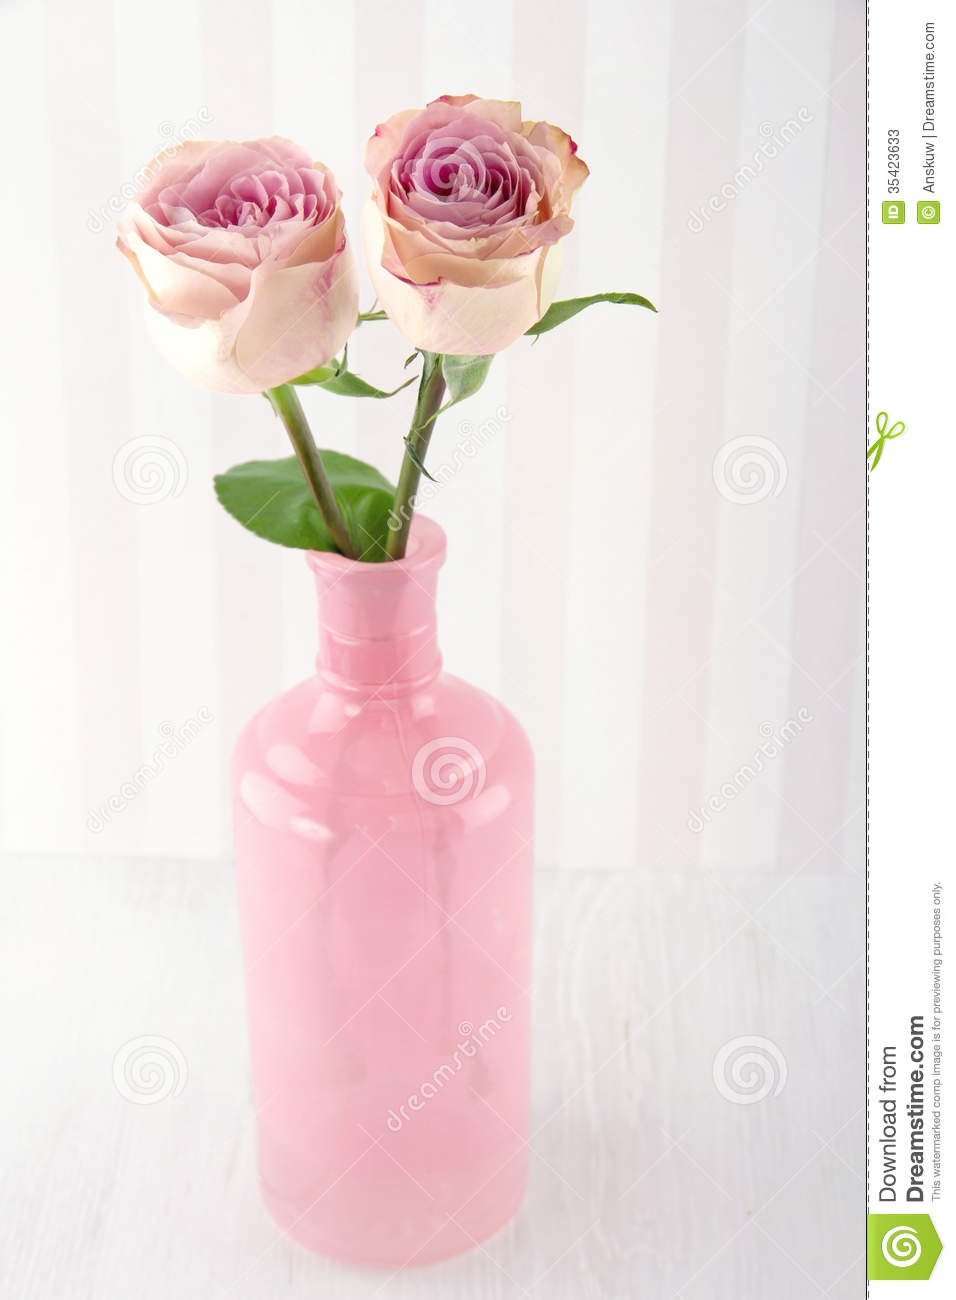 two pink roses in a glass bottle stock image image of gift nobody 35423633. Black Bedroom Furniture Sets. Home Design Ideas